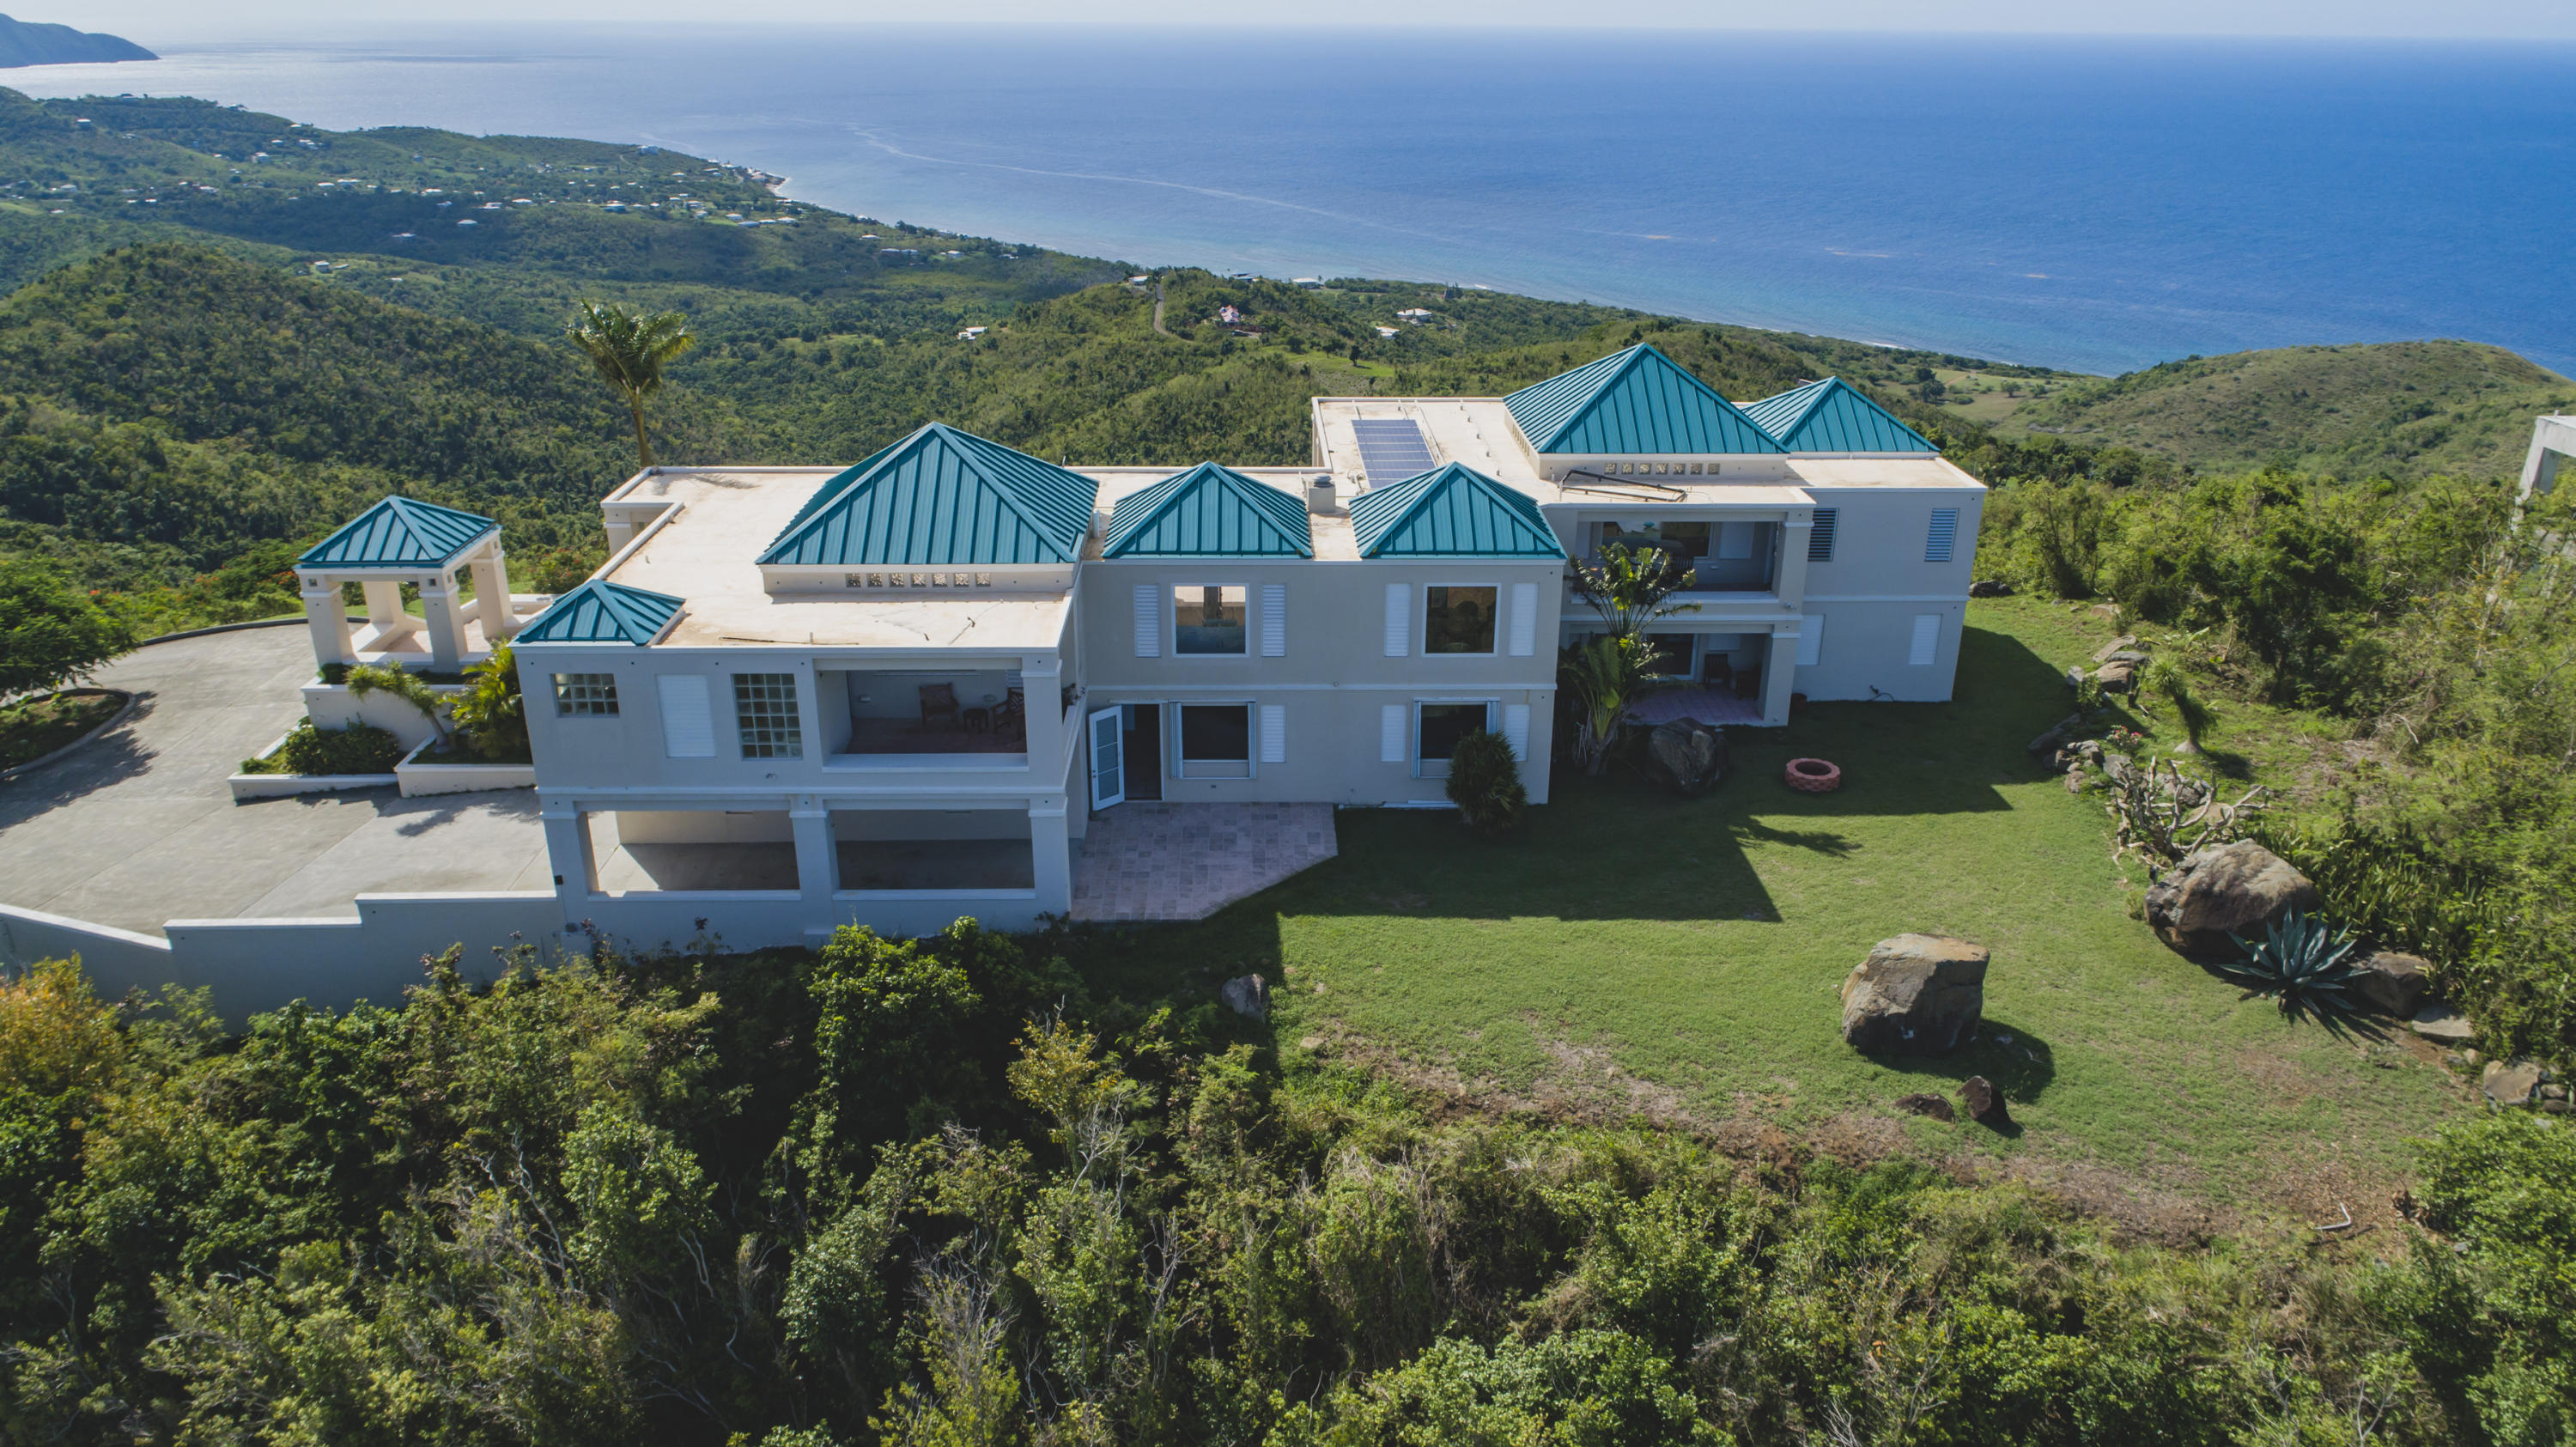 Single Family Home for Sale at 72O, OB,OC Clairmont NB 72O, OB,OC Clairmont NB St Croix, Virgin Islands 00820 United States Virgin Islands